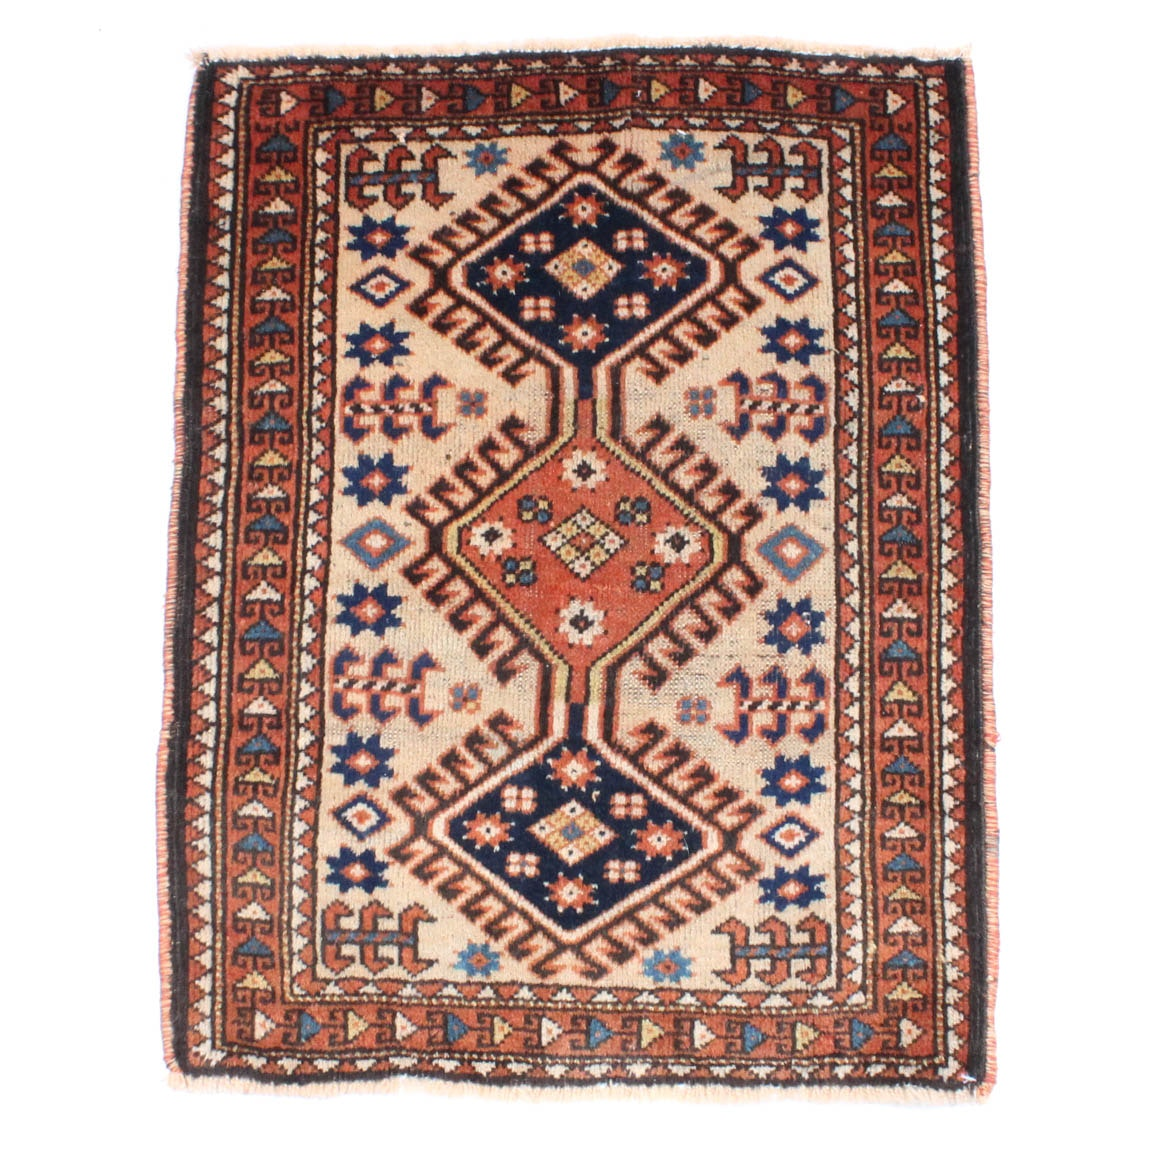 Antique Hand Knotted Persian Qashqai Rug